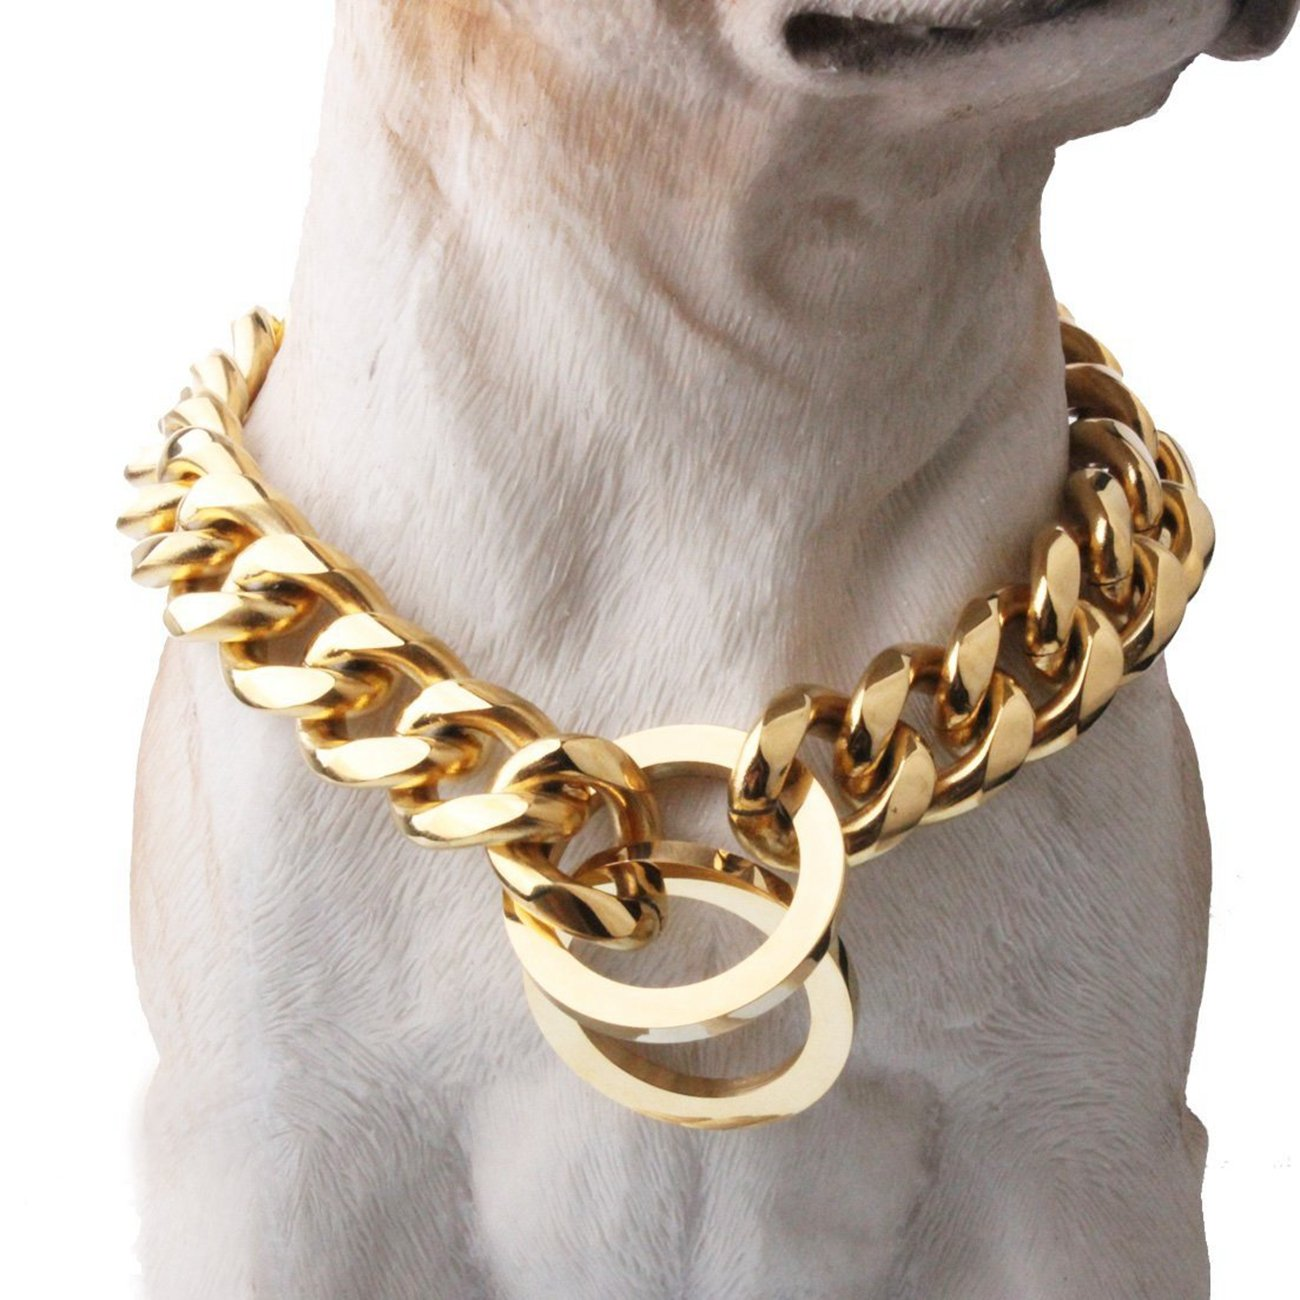 16inch recommend dog's neck 12inch Stainless Steel Curb Chain Pet Dog Collar 15 17 19mm gold Plated for Strong Big Breeds,12-34  (17mm Wide, 16inch Recommend Dog's Neck 12inch)